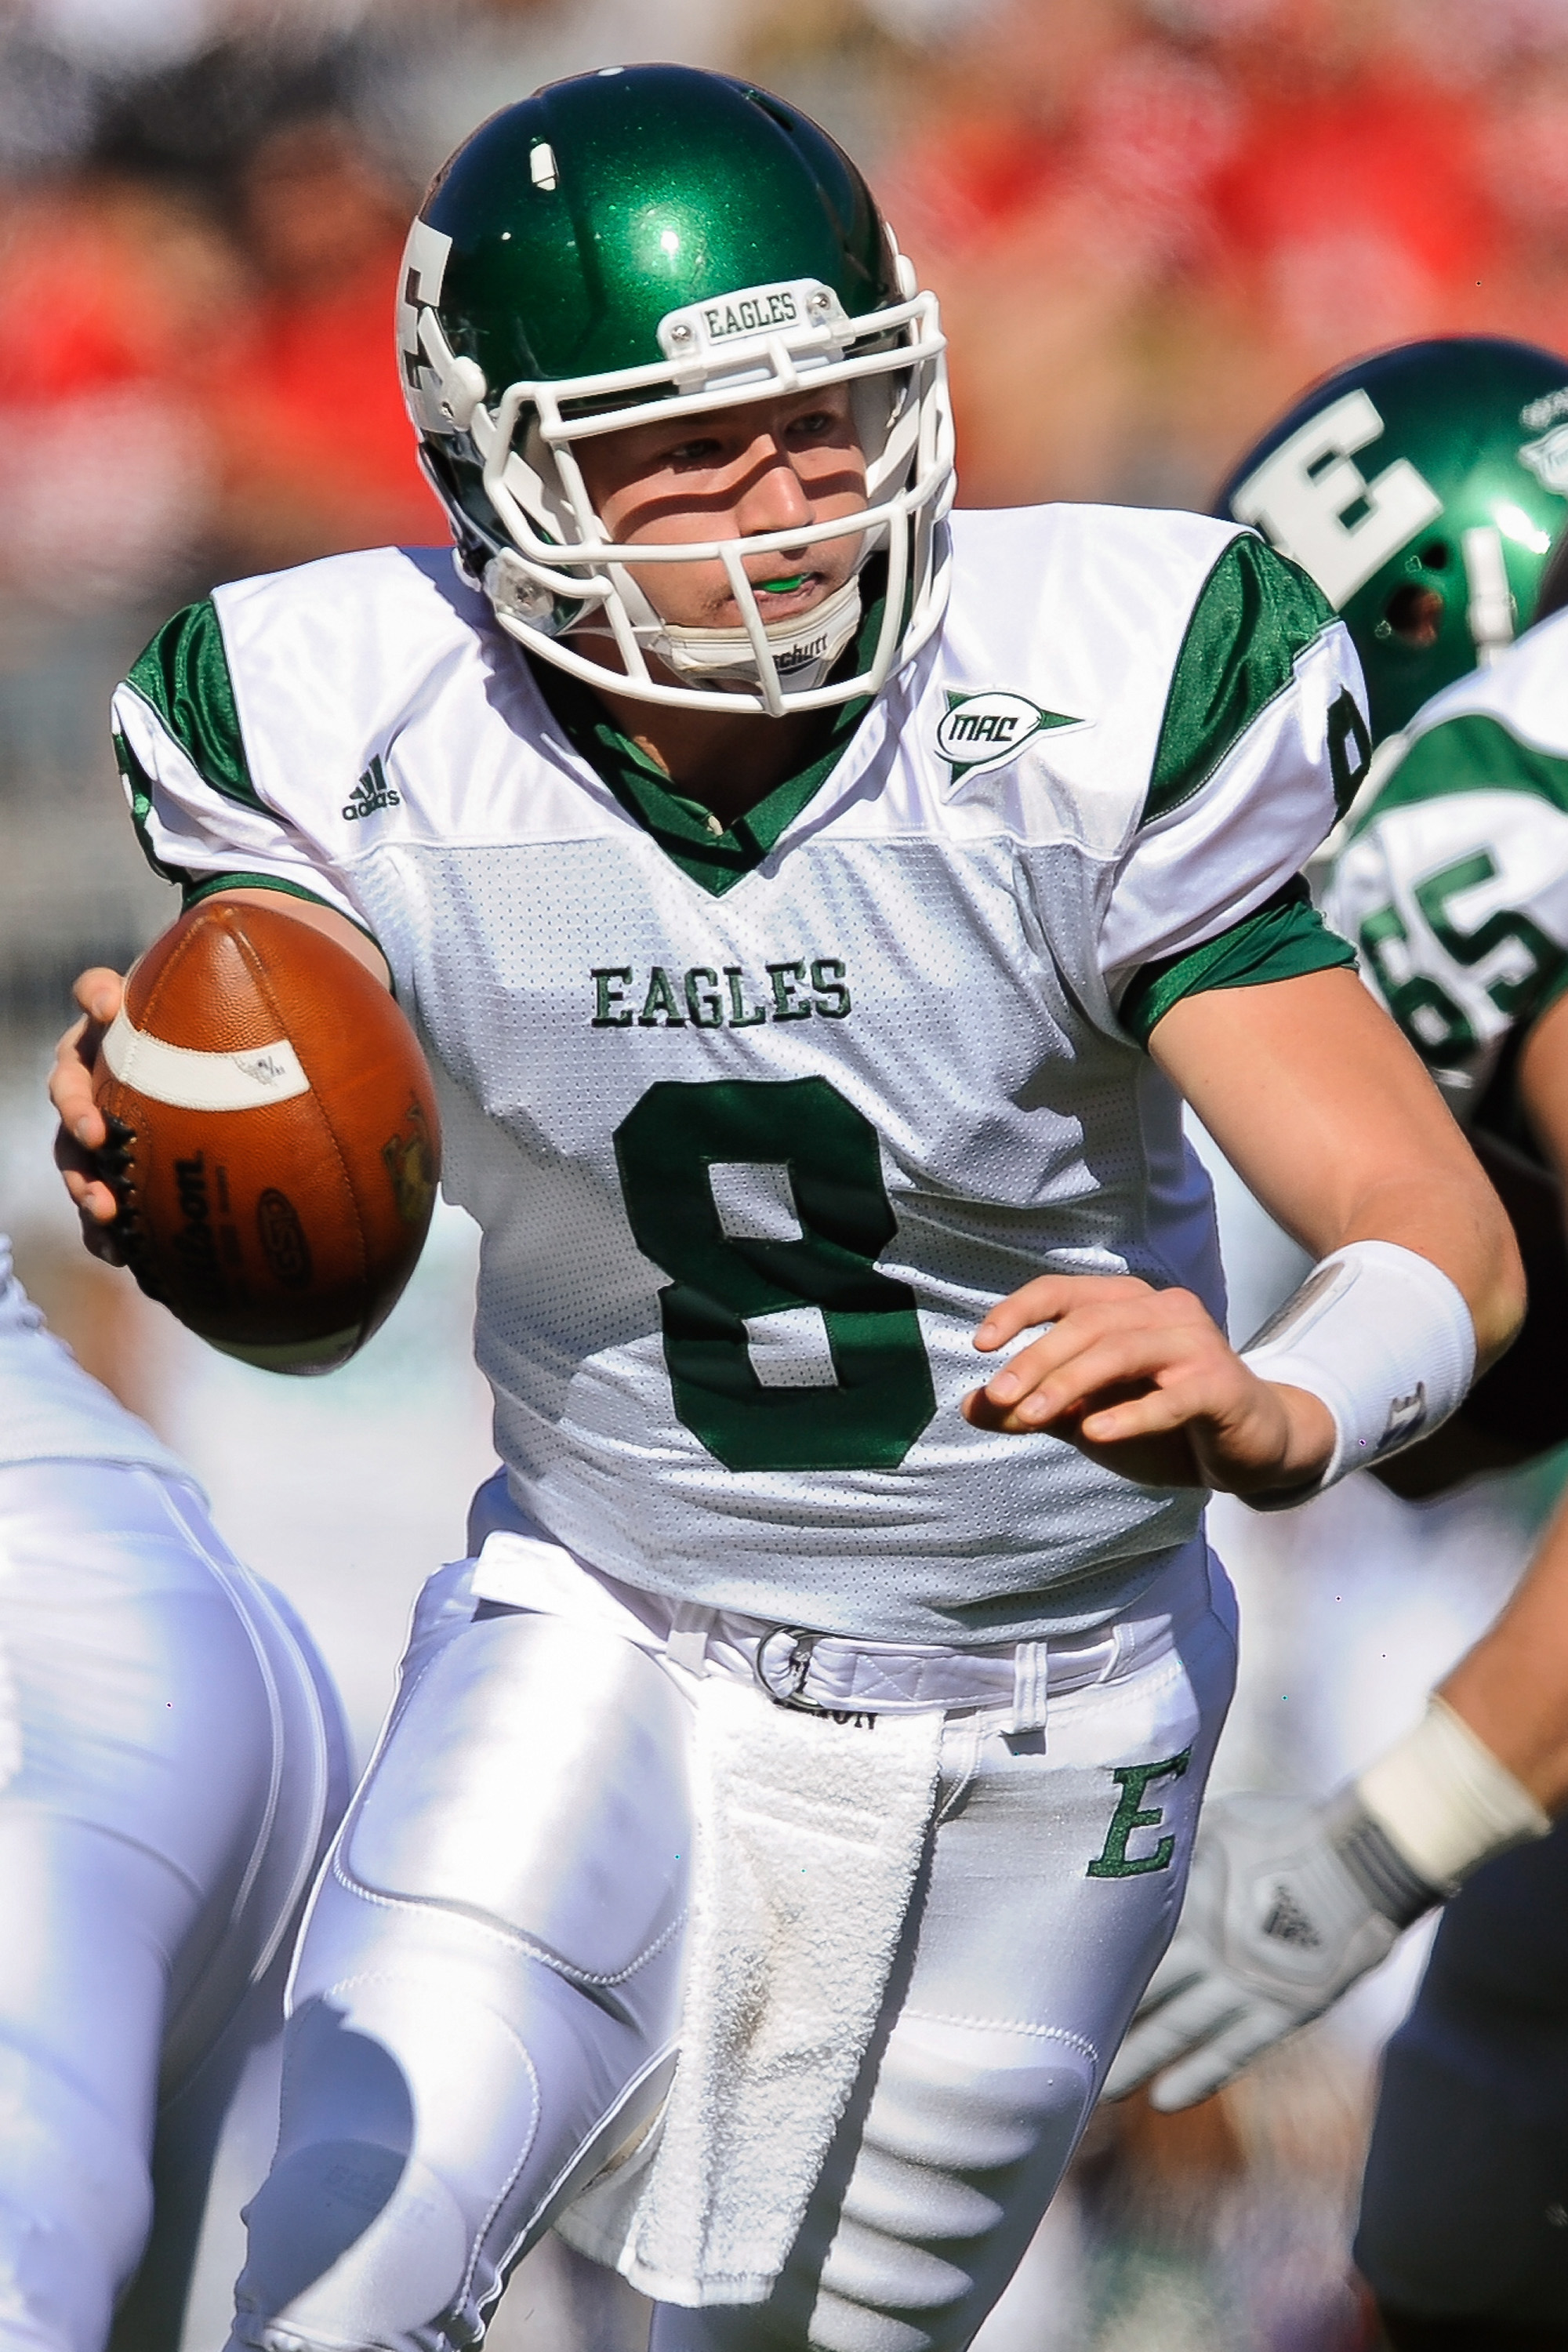 COLUMBUS, OH - SEPTEMBER 25:  Quarterback Alex Gillett #8 of the Eastern Michigan Eagles hands off the ball against the Ohio State Buckeyes at Ohio Stadium on September 25, 2010 in Columbus, Ohio.  Ohio State won 73-20. (Photo by Jamie Sabau/Getty Images)